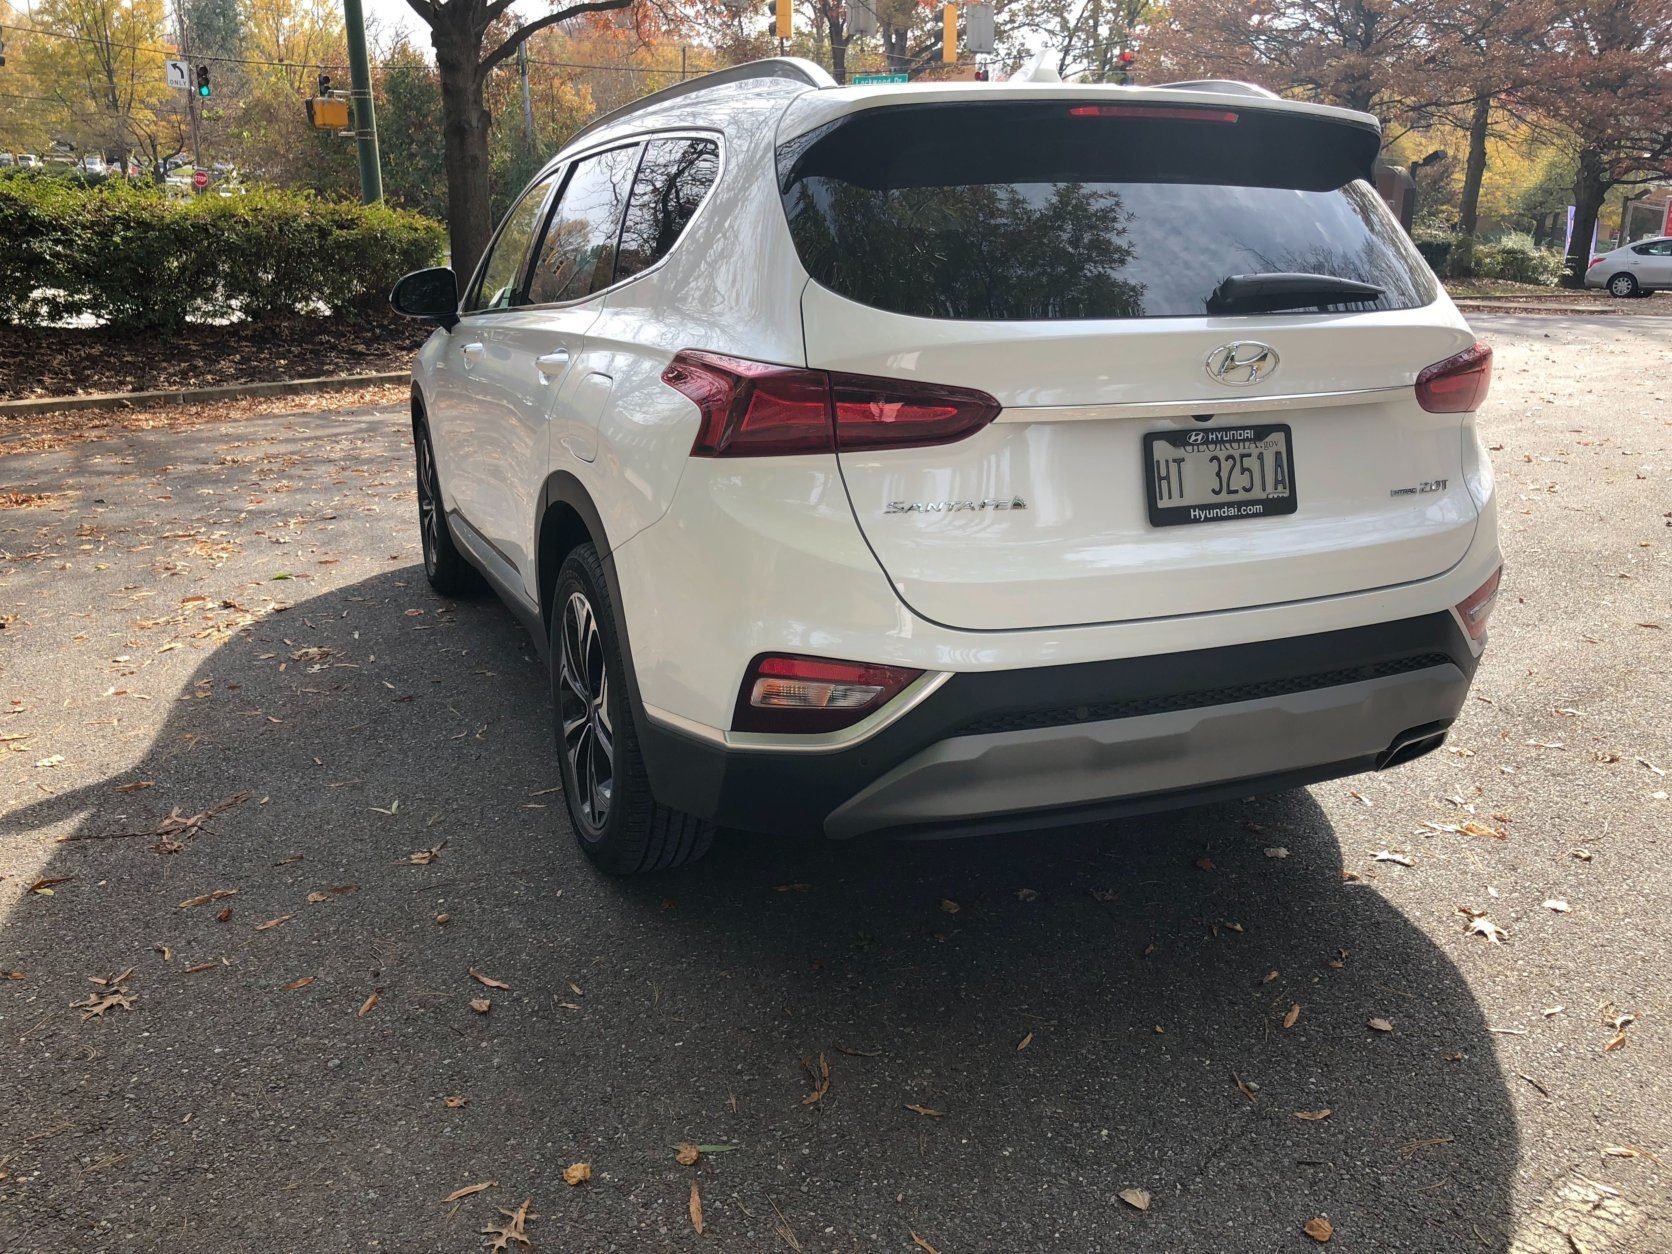 <p>The tail end isn't as stylish as the rest, but a rooftop spoiler and taillights the wrap around toward the sides of the Santa Fe are more appealing than most crossovers today.</p>